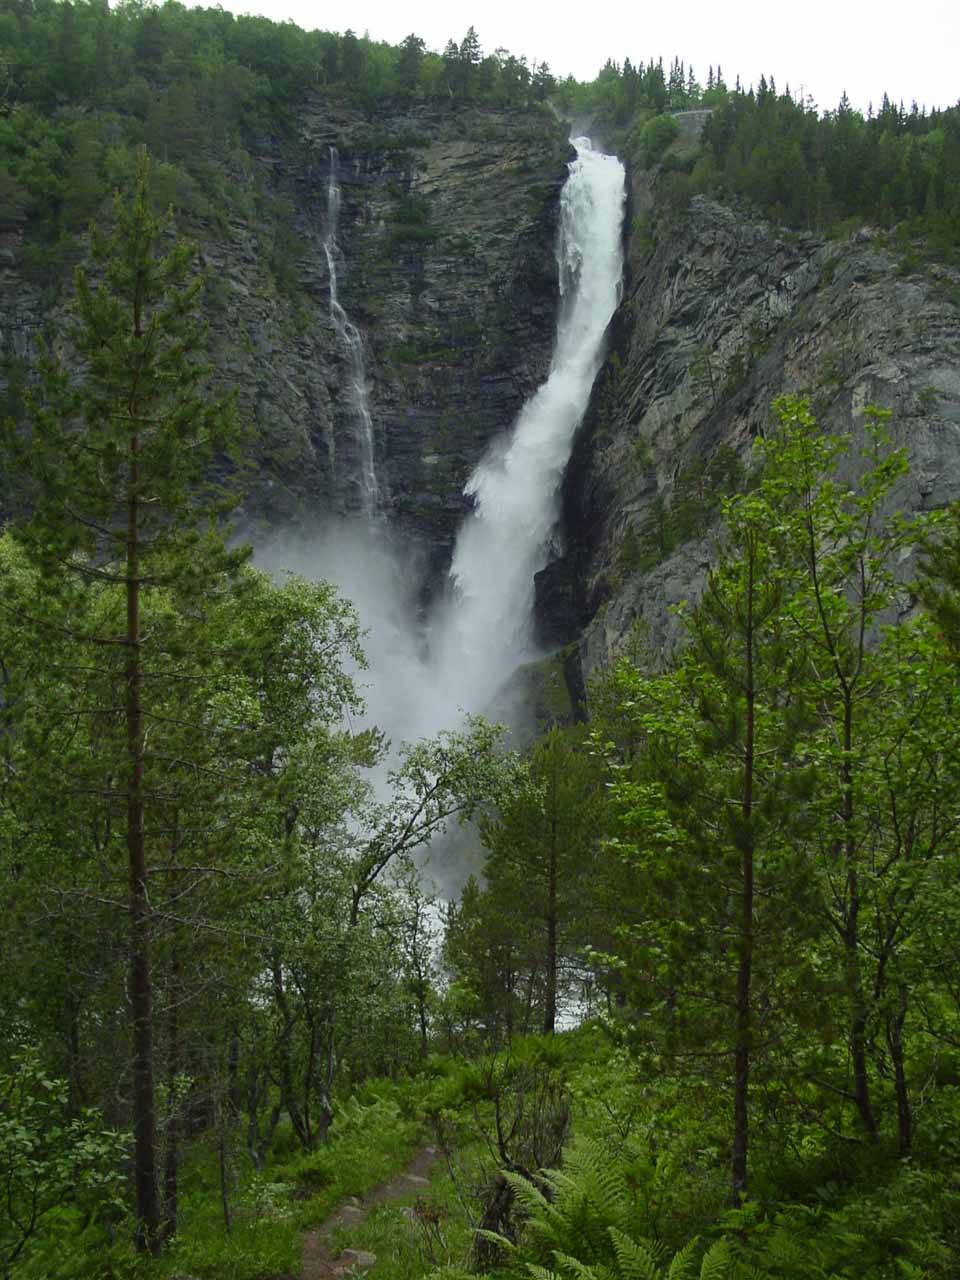 Checking out Svøufossen as I was getting close to my turnaround point